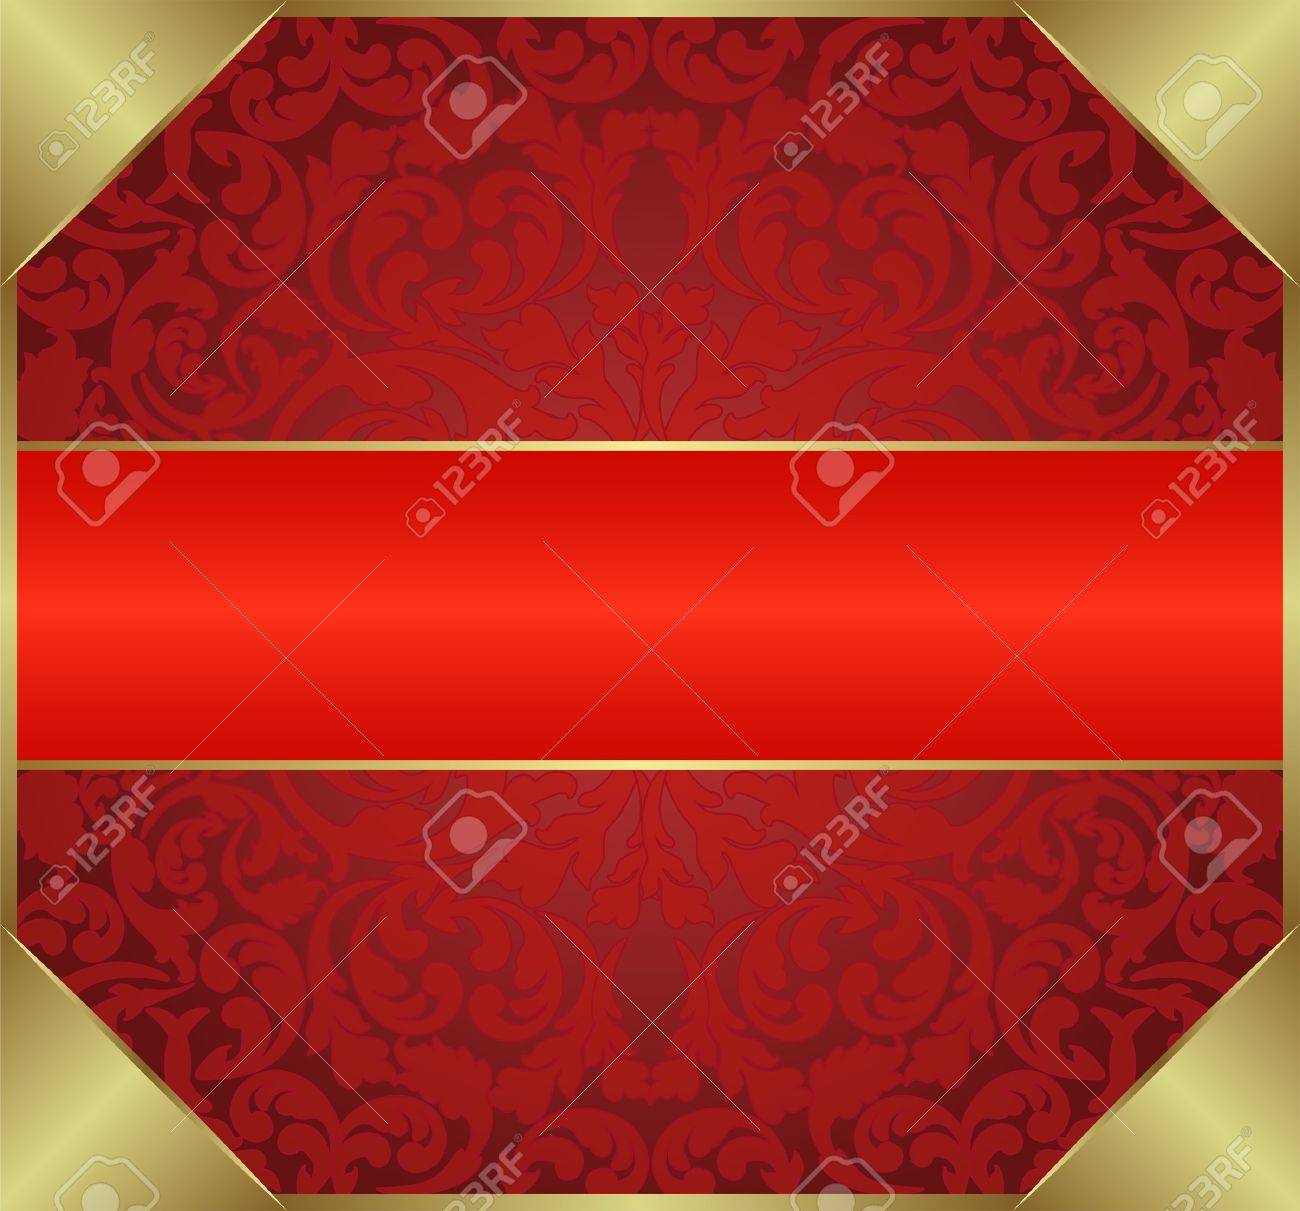 red background with floral ornaments Stock Vector - 12933359